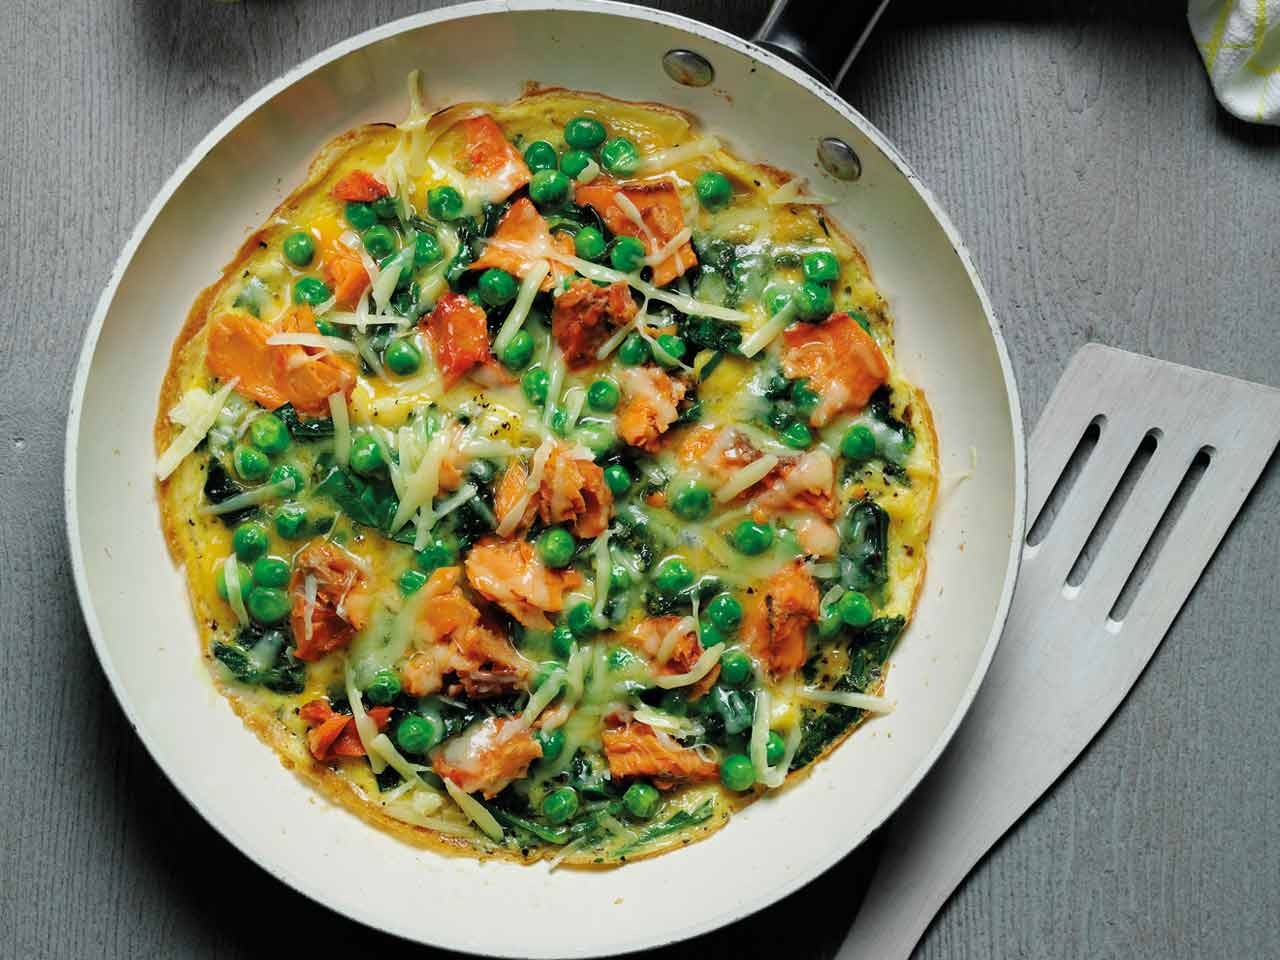 Spinach omelette with salmon